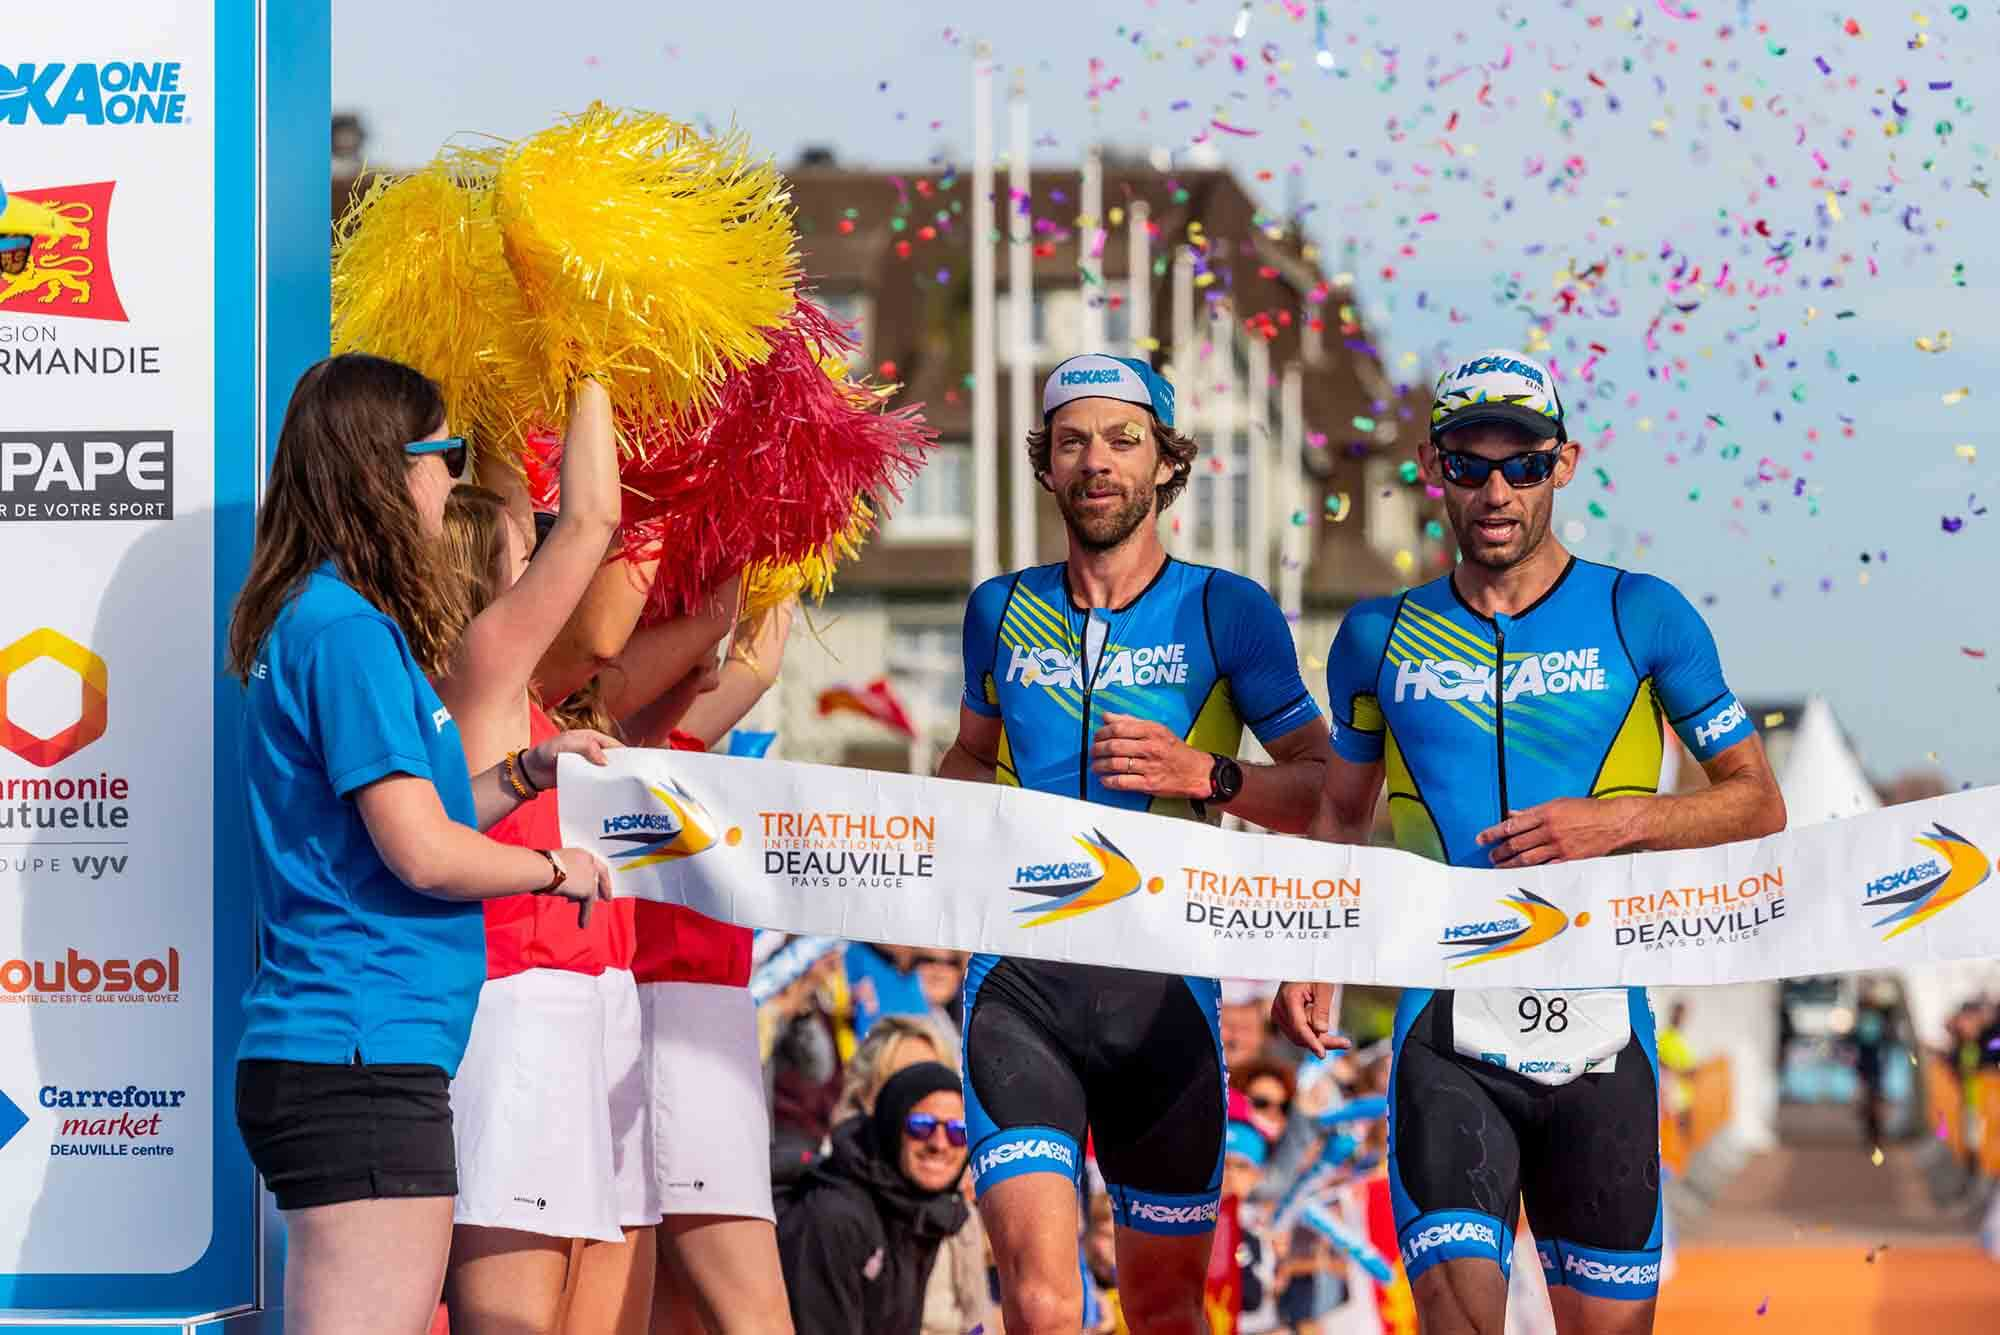 HOKA athletes Antoine Perel and Olivier Lyoen cross the line first at the 2018 Deauville Triathlon